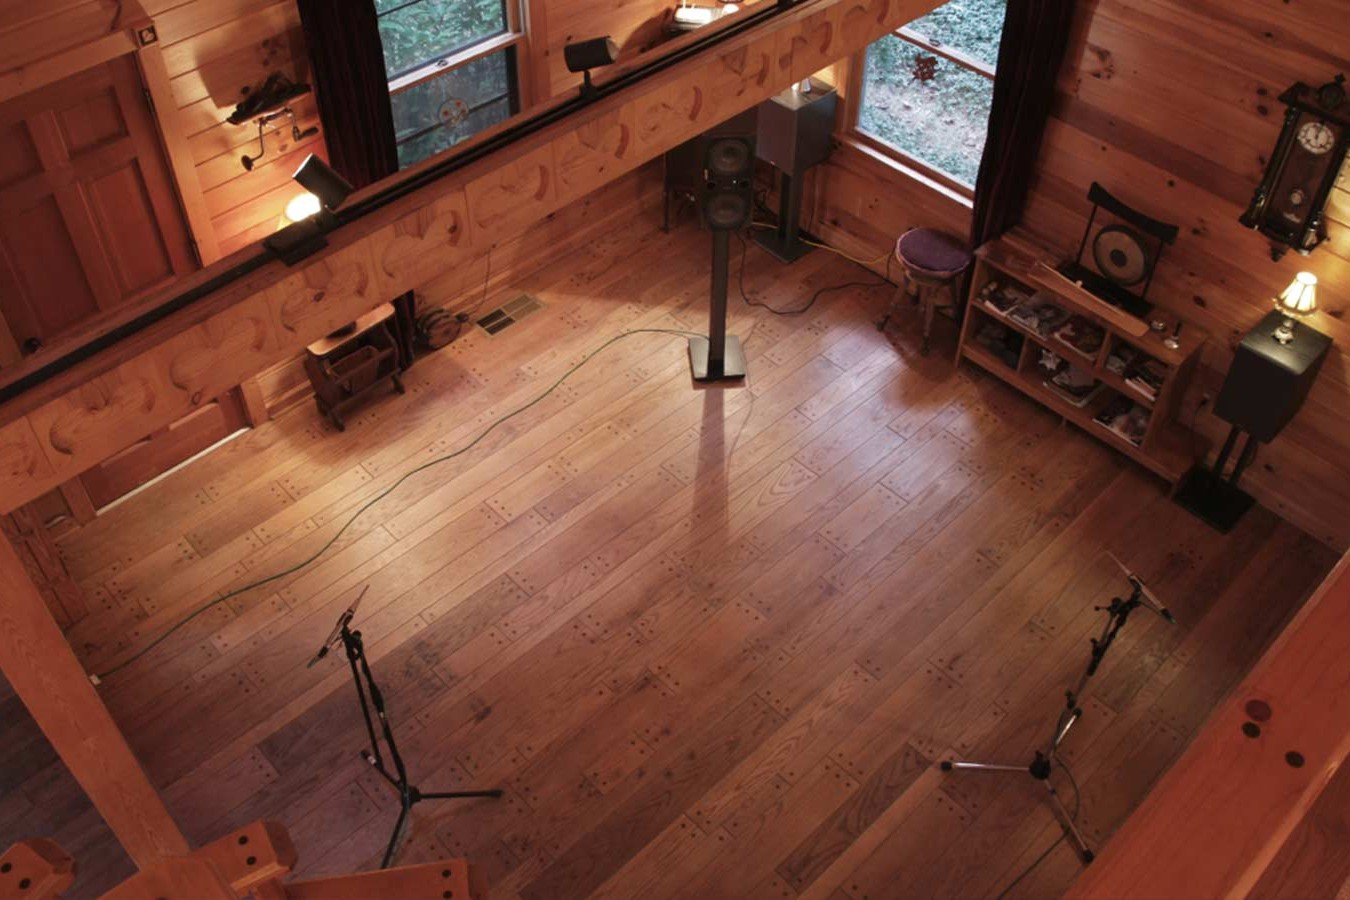 image of impulse response recording in a wooden home